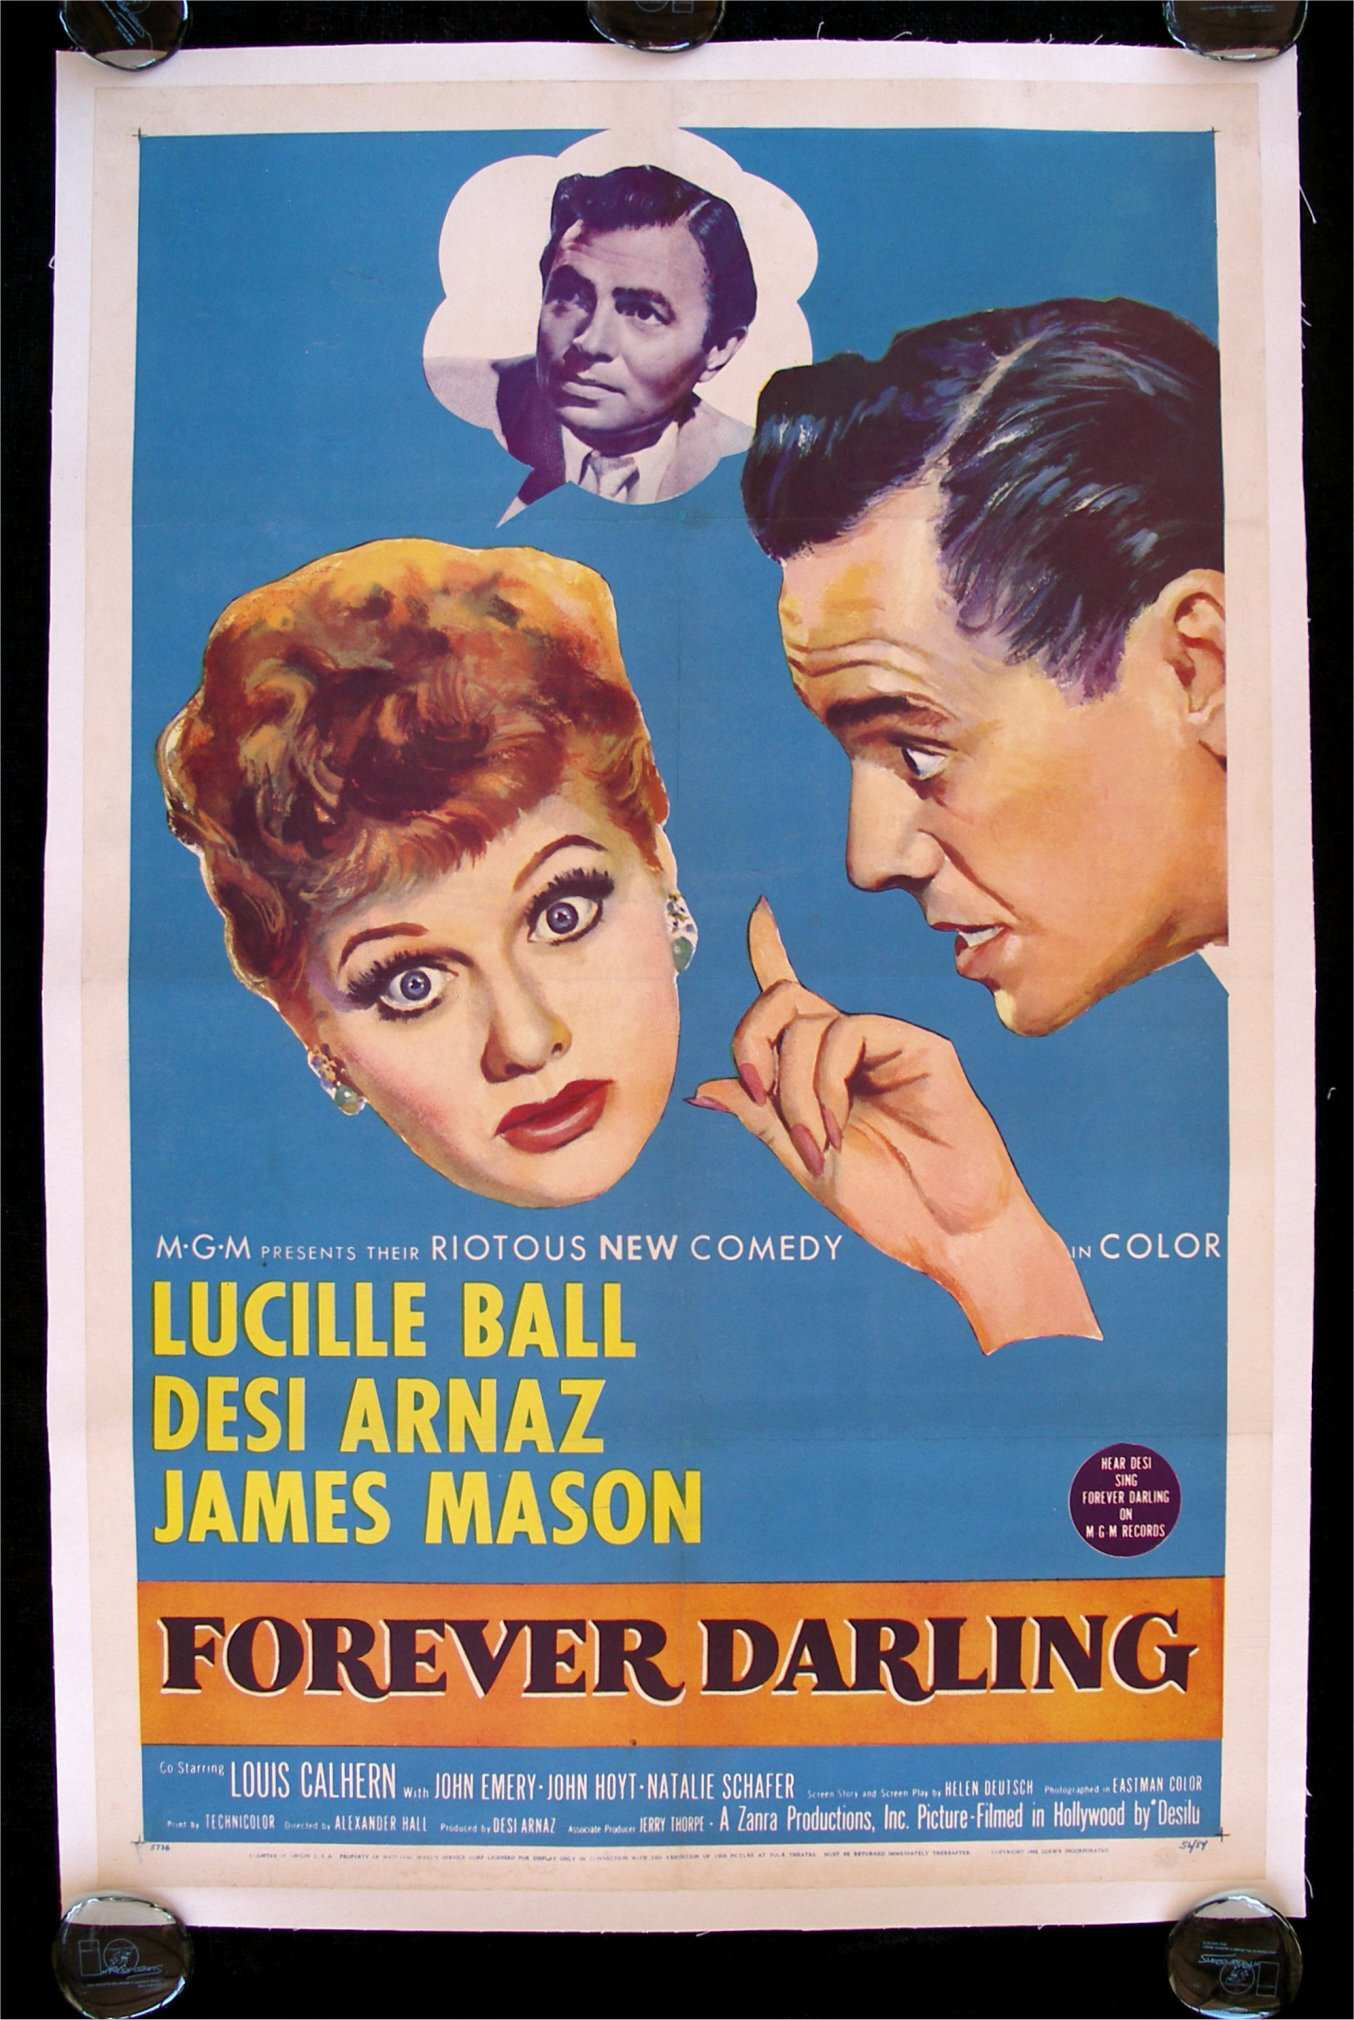 Forever Darling movie poster starring Lucille Ball, Desi Arnaz and James Mason.